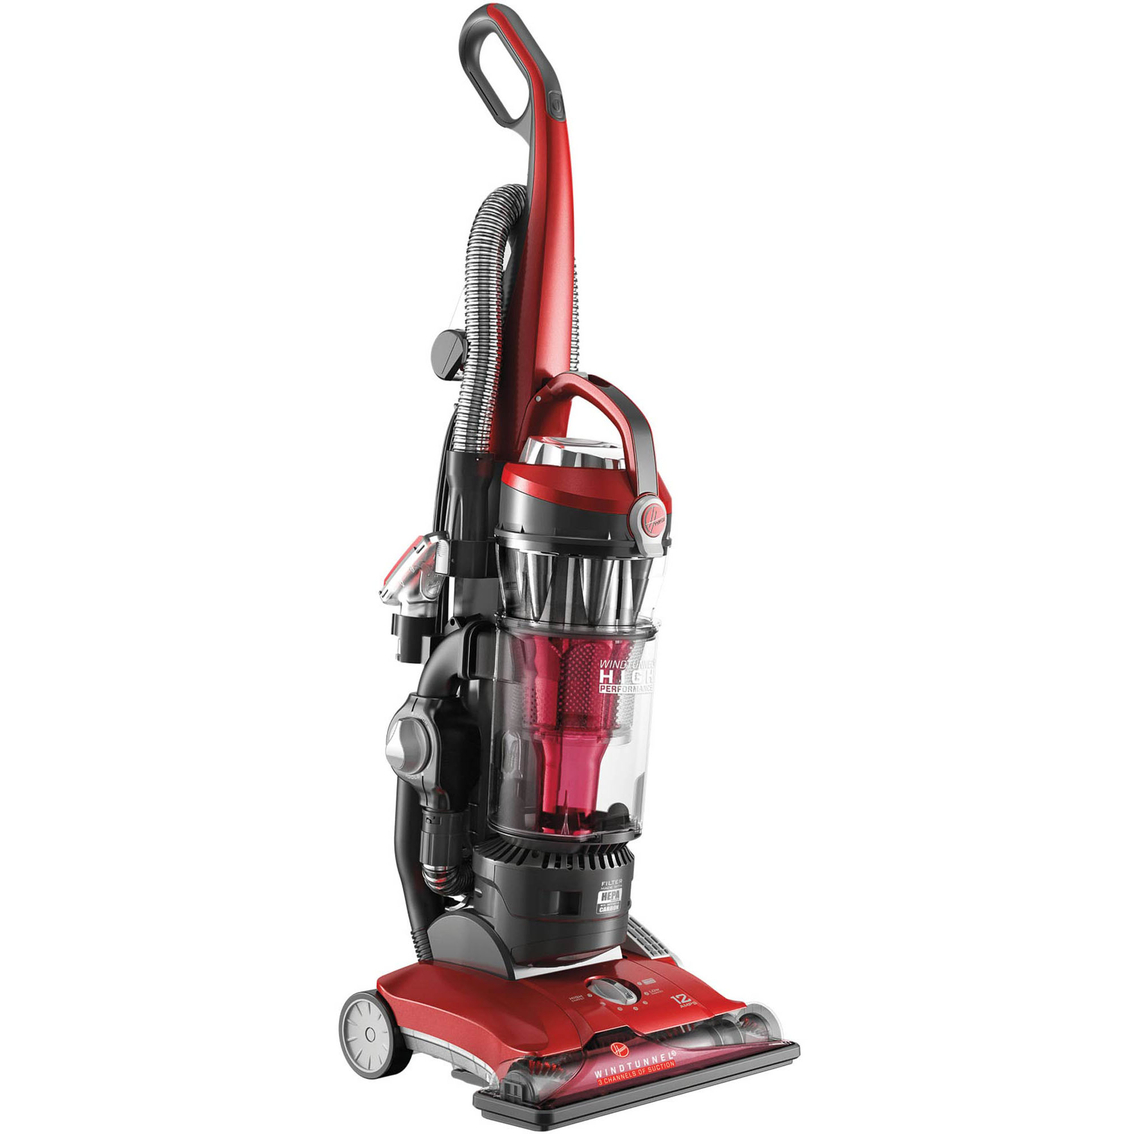 Garage Hoover Vacuum Hoover Windtunnel 3 High Performance Bagless Upright Vacuum